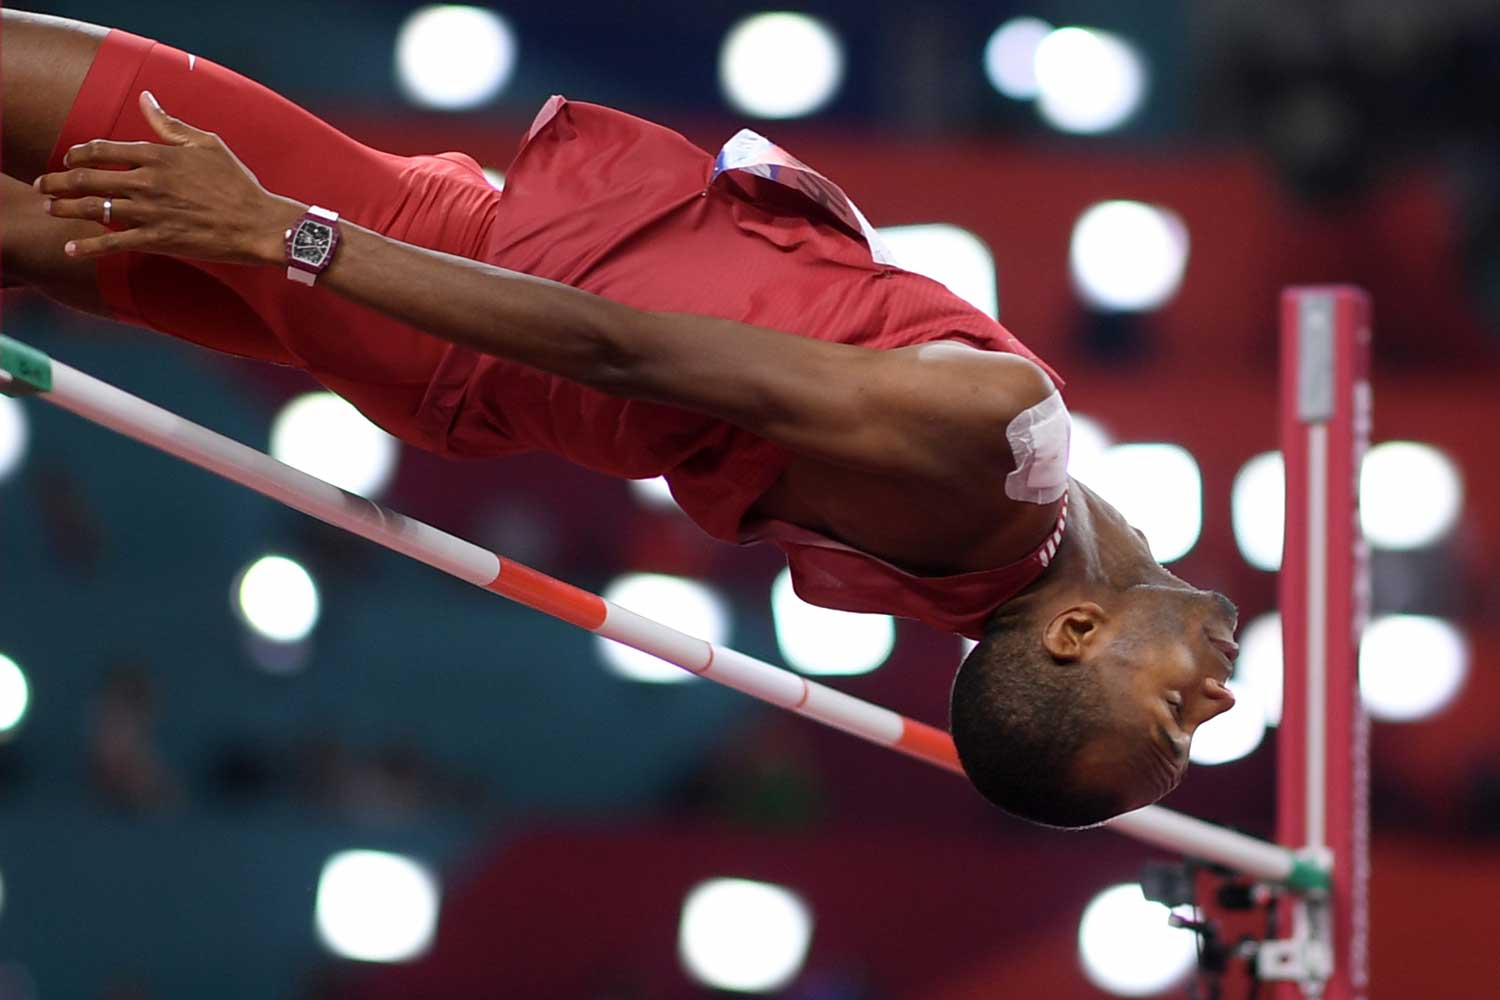 Qatar's Mutaz Essa Barshim competes in the Men's High Jump final at the 2019 IAAF Athletics World Championships at the Khalifa International stadium in Doha on October 4, 2019, with the with the RM 67-02 Automatic Mutaz Essa Barshim – High Jump on his wrist (Photo by Kirill KUDRYAVTSEV / AFP) (Photo by KIRILL KUDRYAVTSEV / AFP via Getty Images)